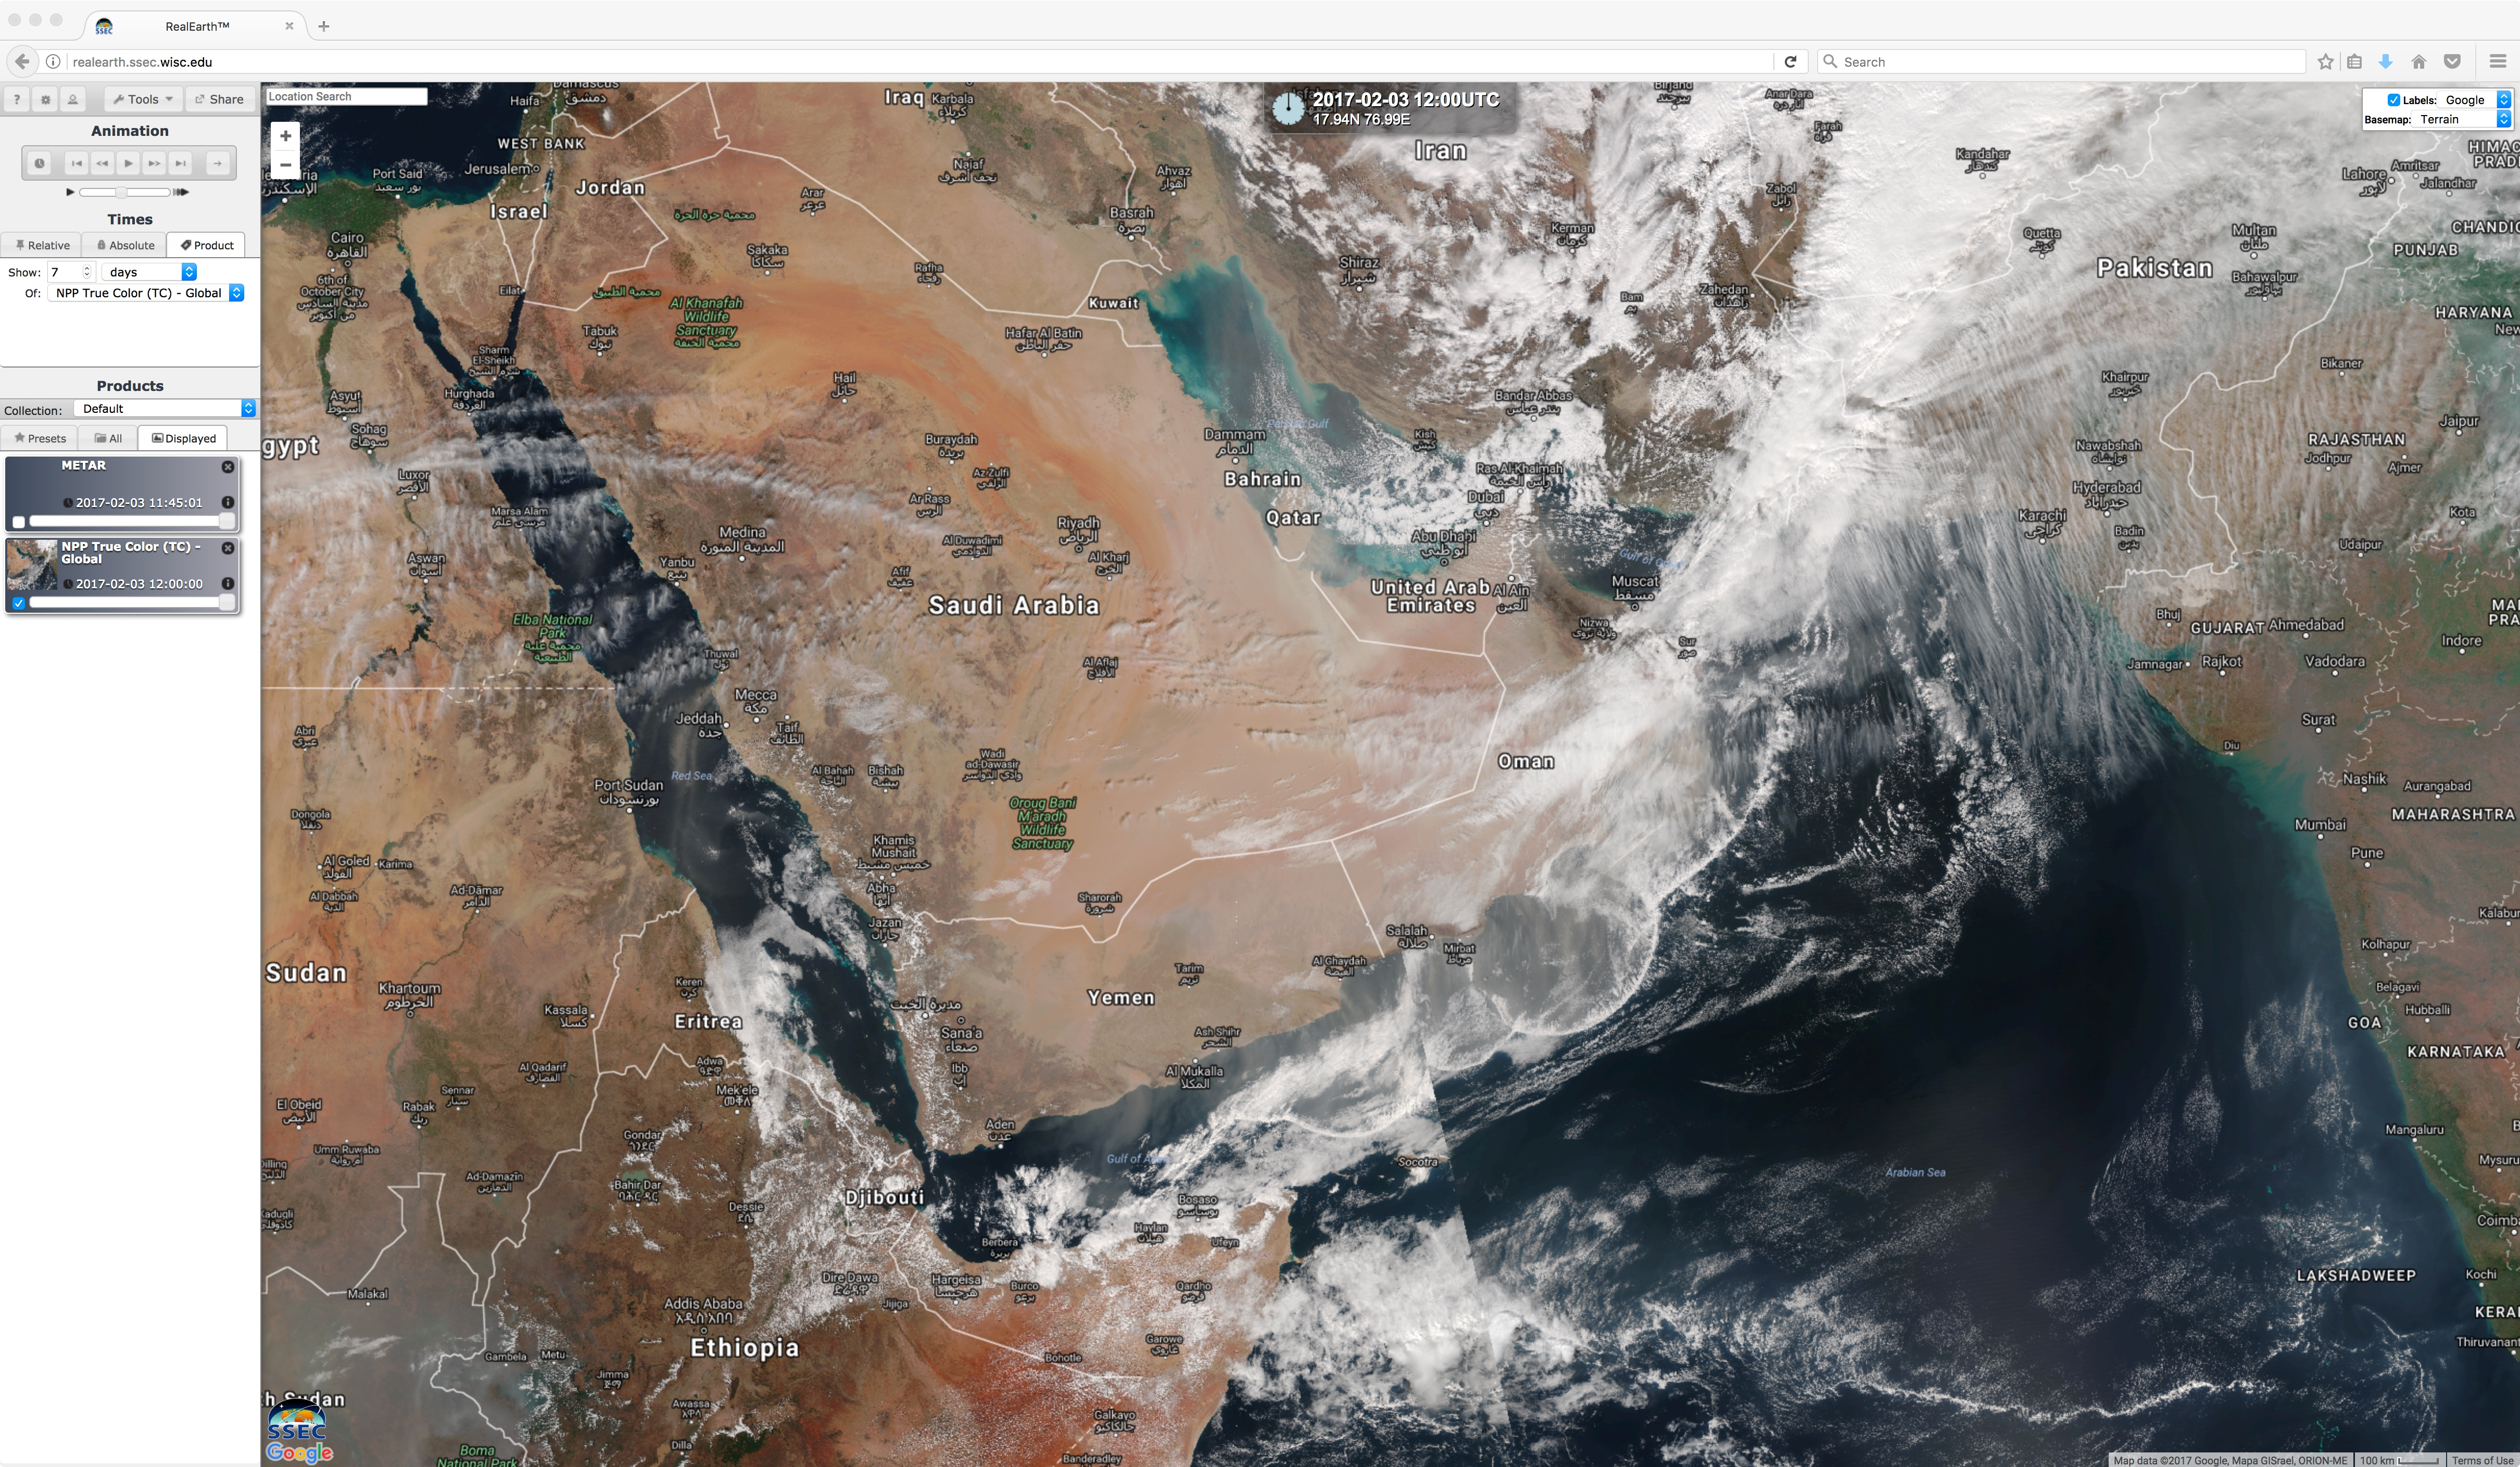 Daily composites of Suomi NPP VIIRS true-color images [click to play animation]